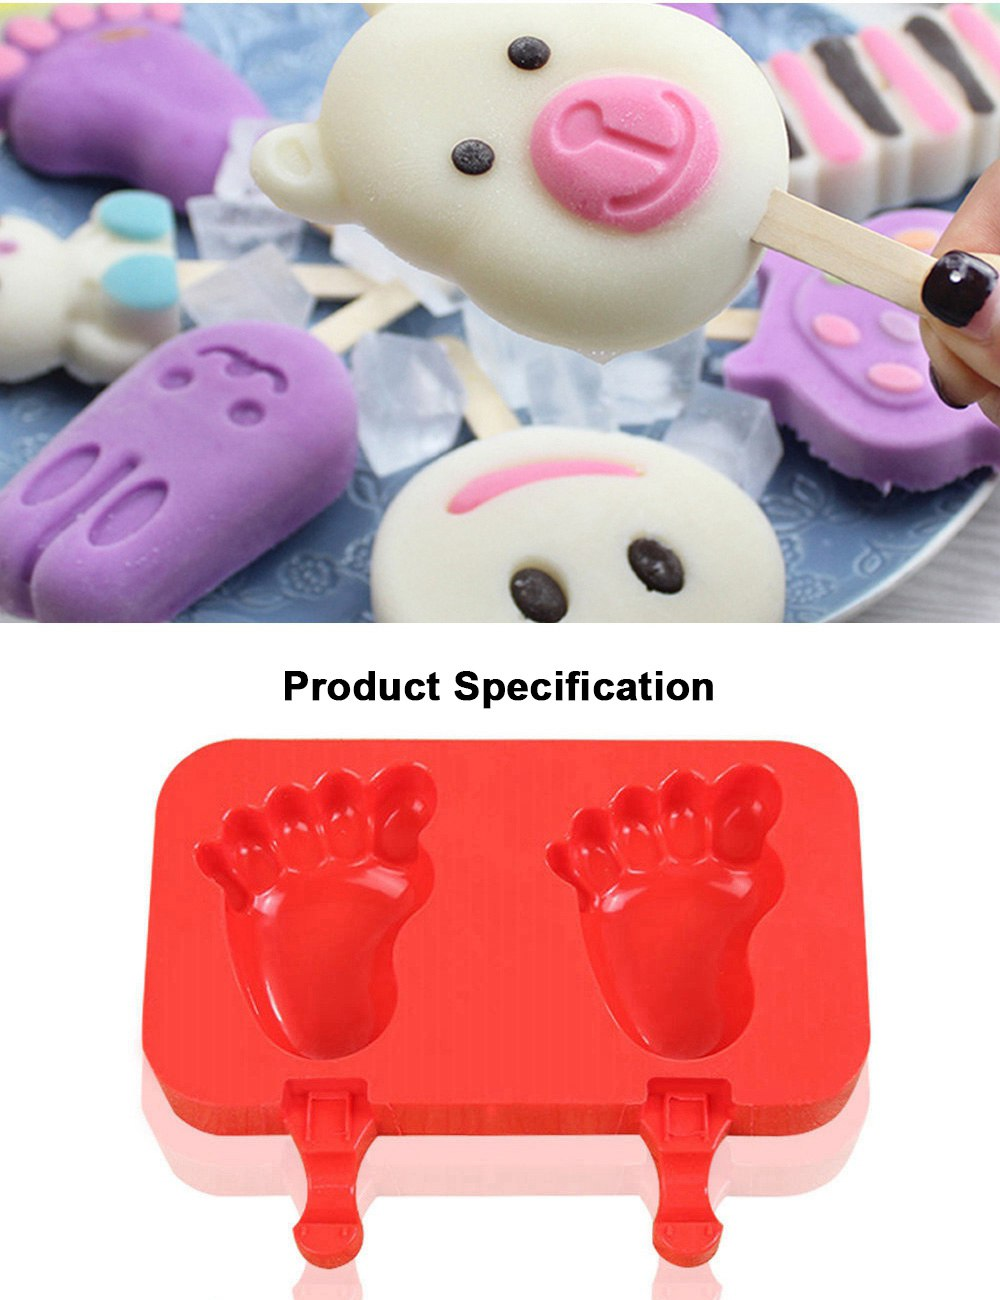 Silicone DIY Cartoon Ice Cream Mould, Popsicles Mould Set, 2pcs 3pcs Homemade Ice Cream Set, DIY Ice Cream Mold Maker 5